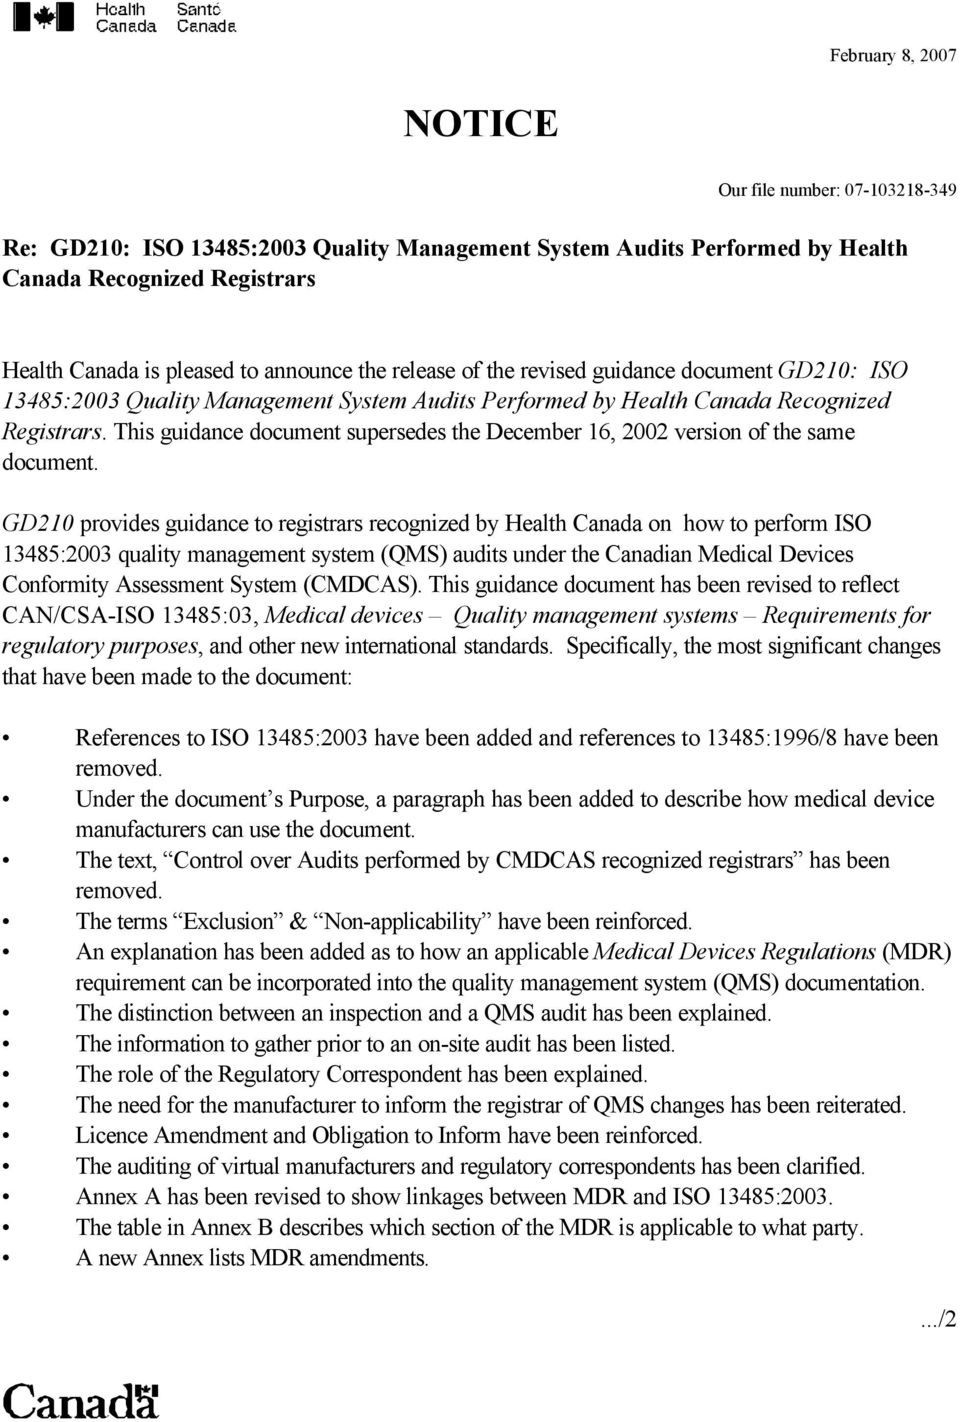 GD210 provides guidance to registrars recognized by Health Canada on how to perform ISO 13485:2003 quality management system (QMS) audits under the Canadian Medical Devices Conformity Assessment